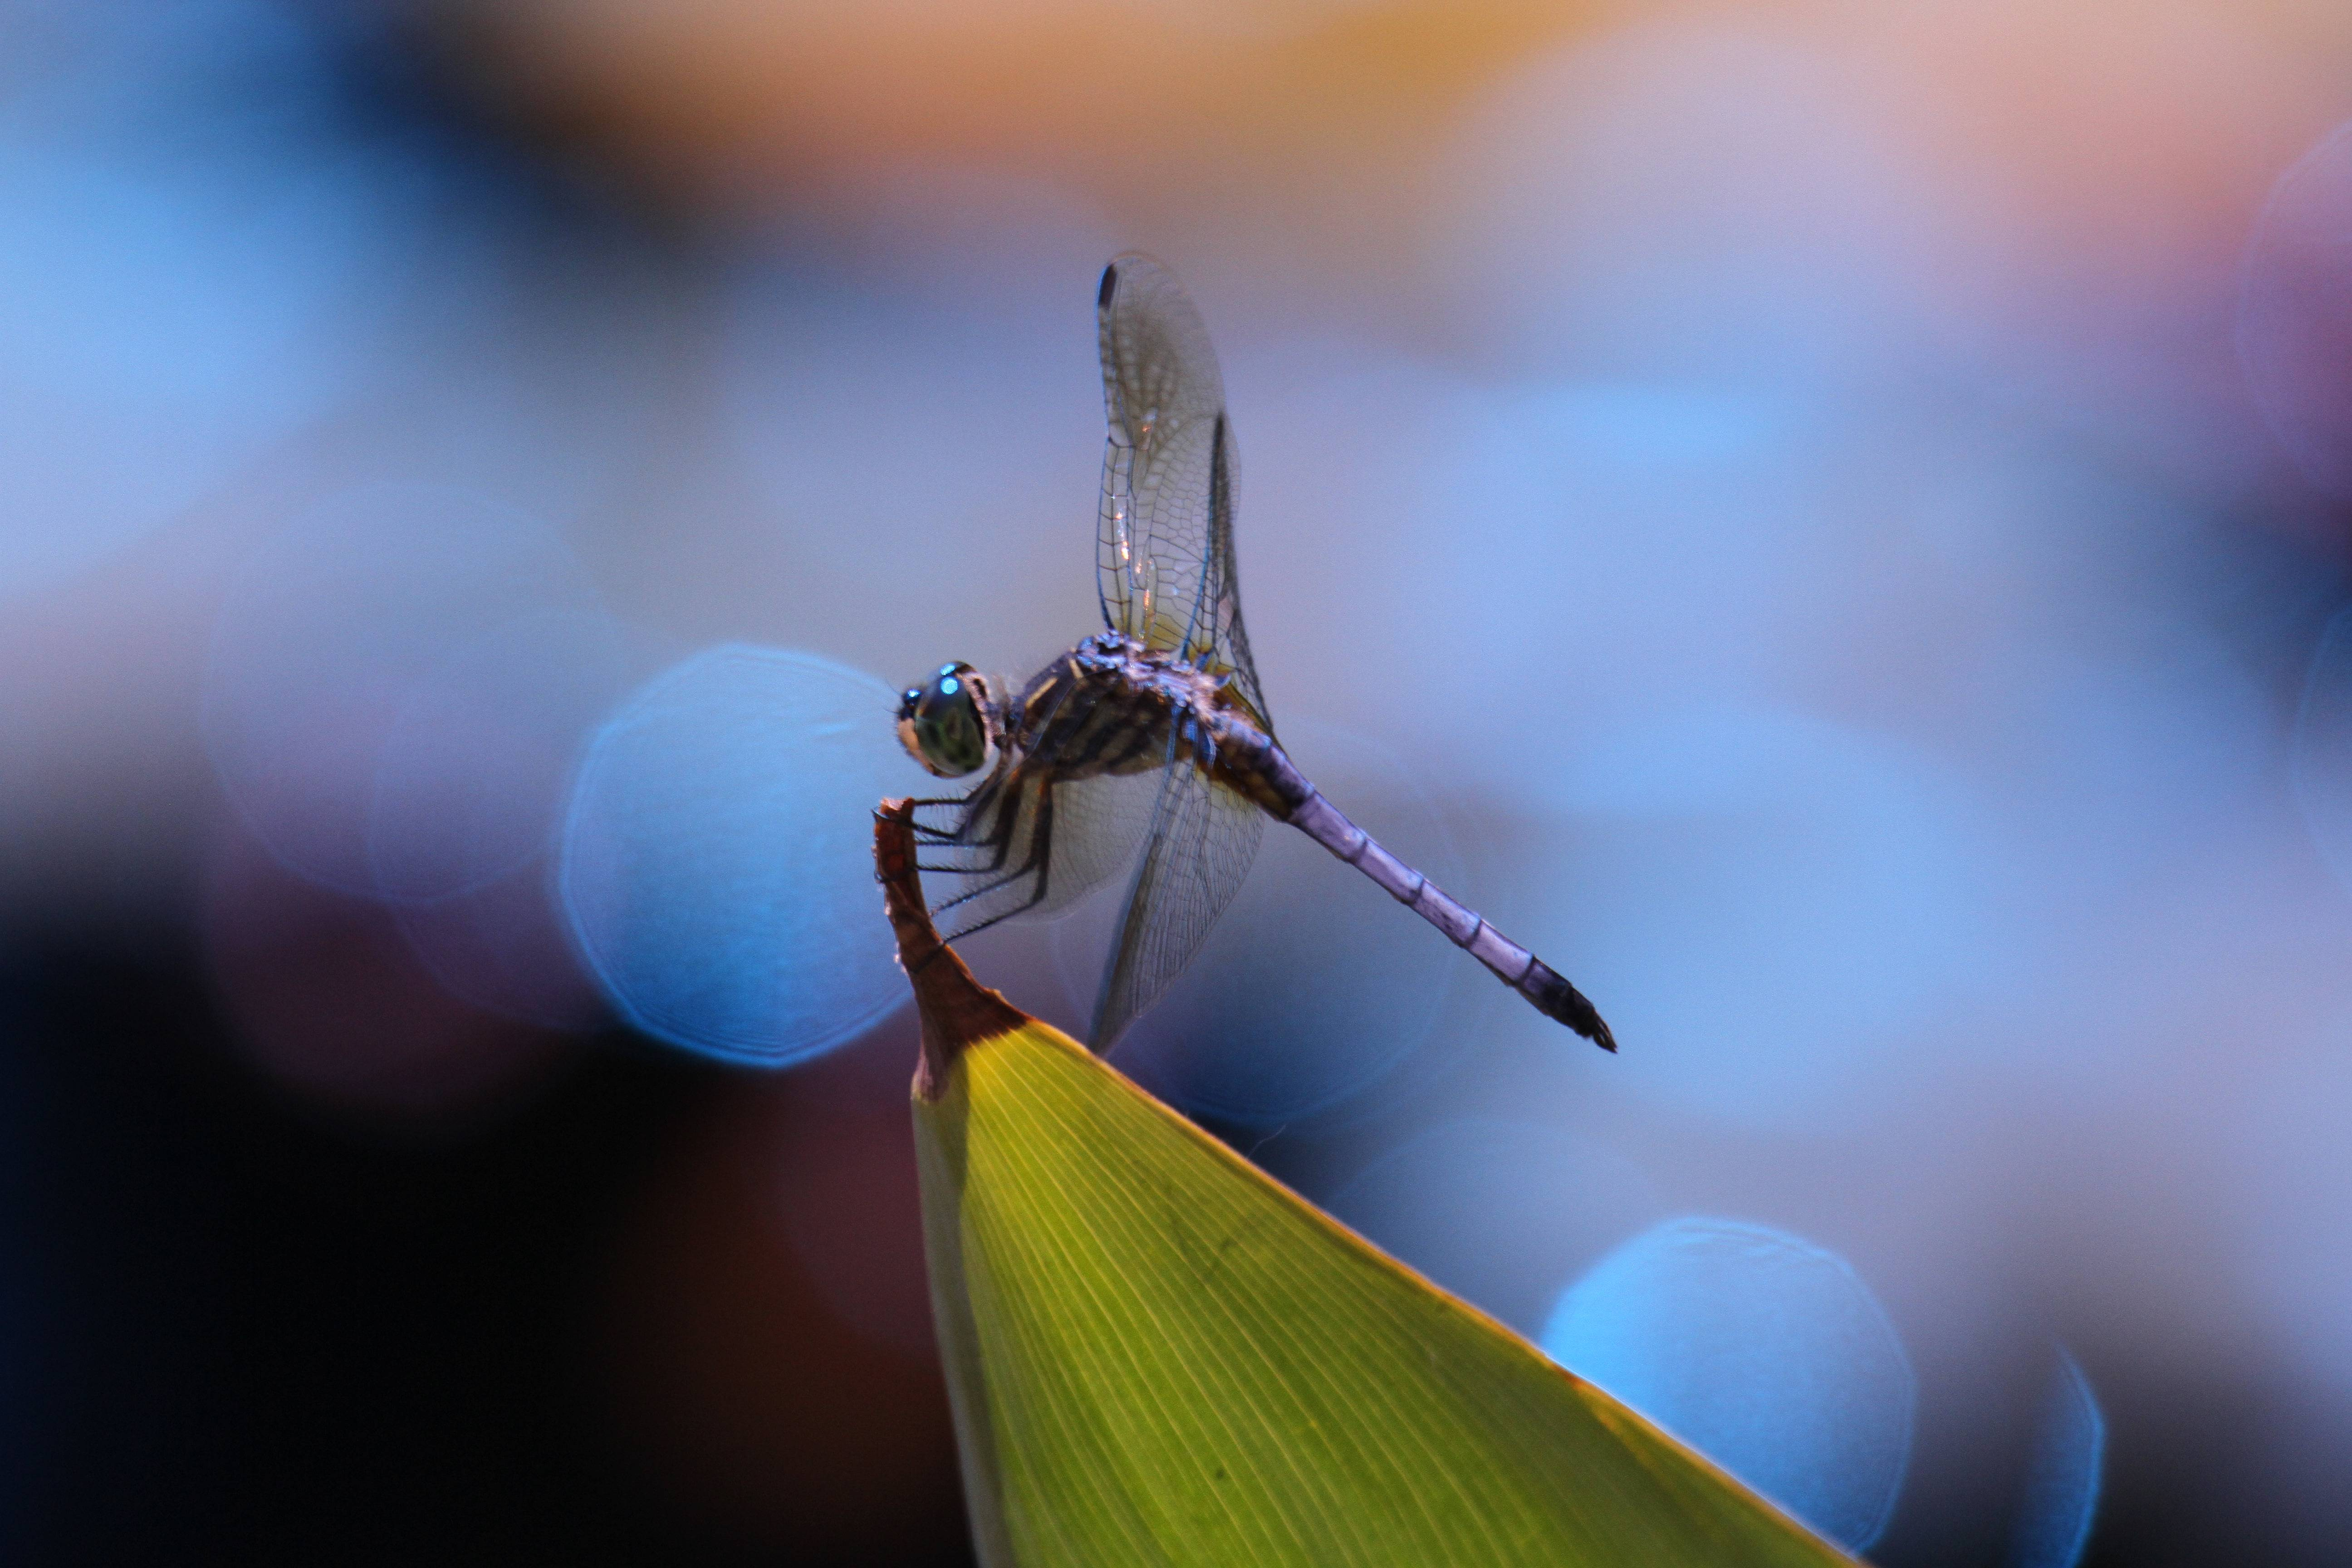 I took this photo during a recent visit to the Chicago Botanic Garden, I noticed this dragonfly circling and returning to a favorite resting spot.